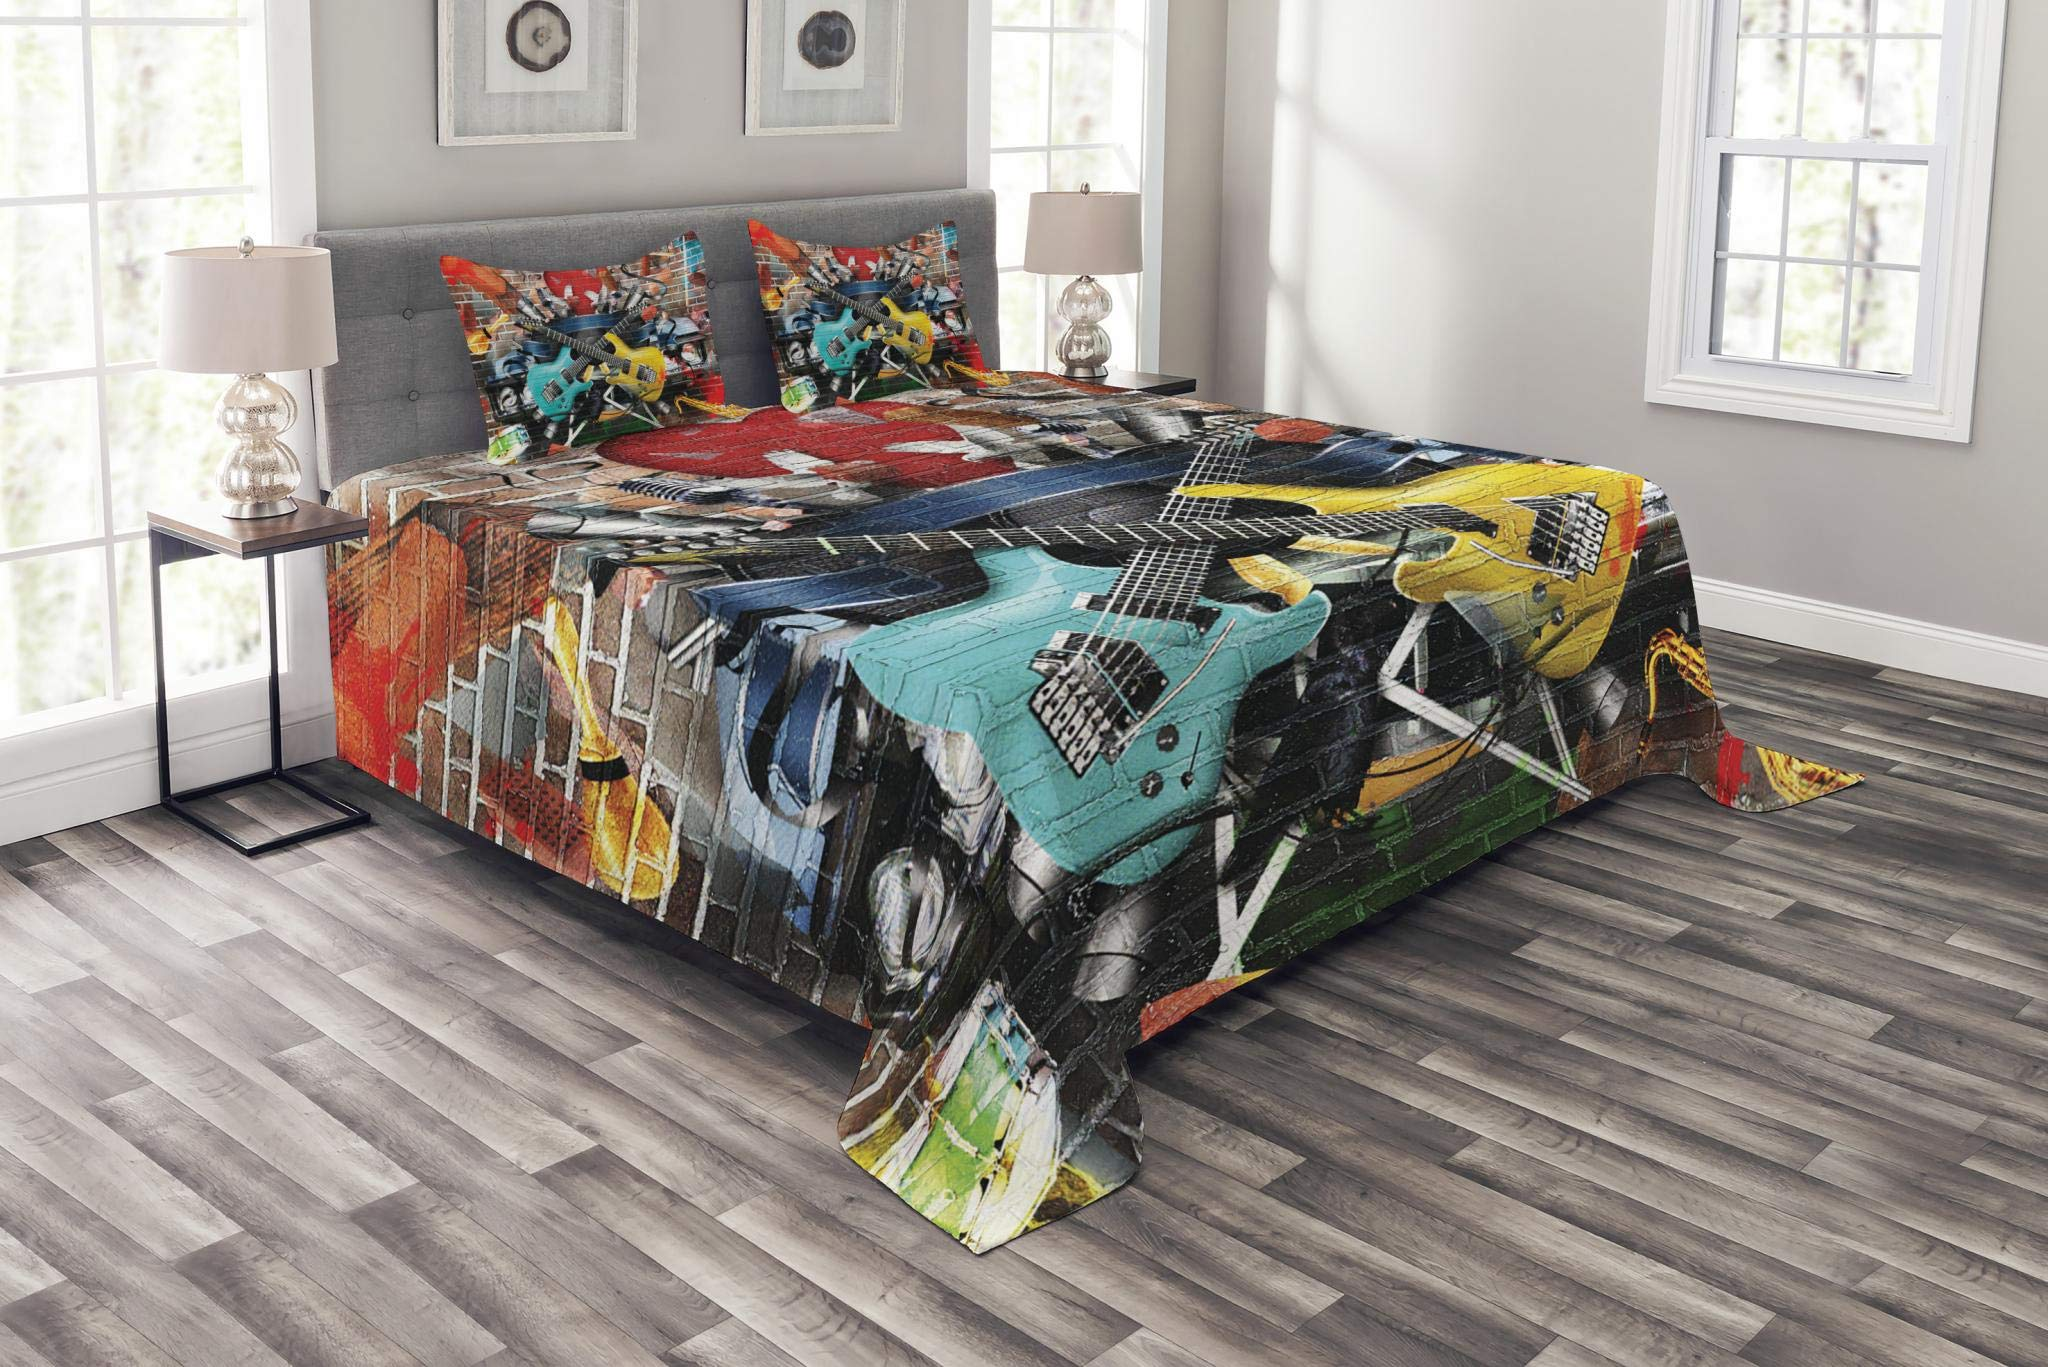 Ambesonne Music Bedspread Set Queen Size, Collage of Music Color and Musical Instruments Street Wall Art Joyful Nostalgia Print, Decorative Quilted 3 Piece Coverlet Set with 2 Pillow Shams, Multicolor